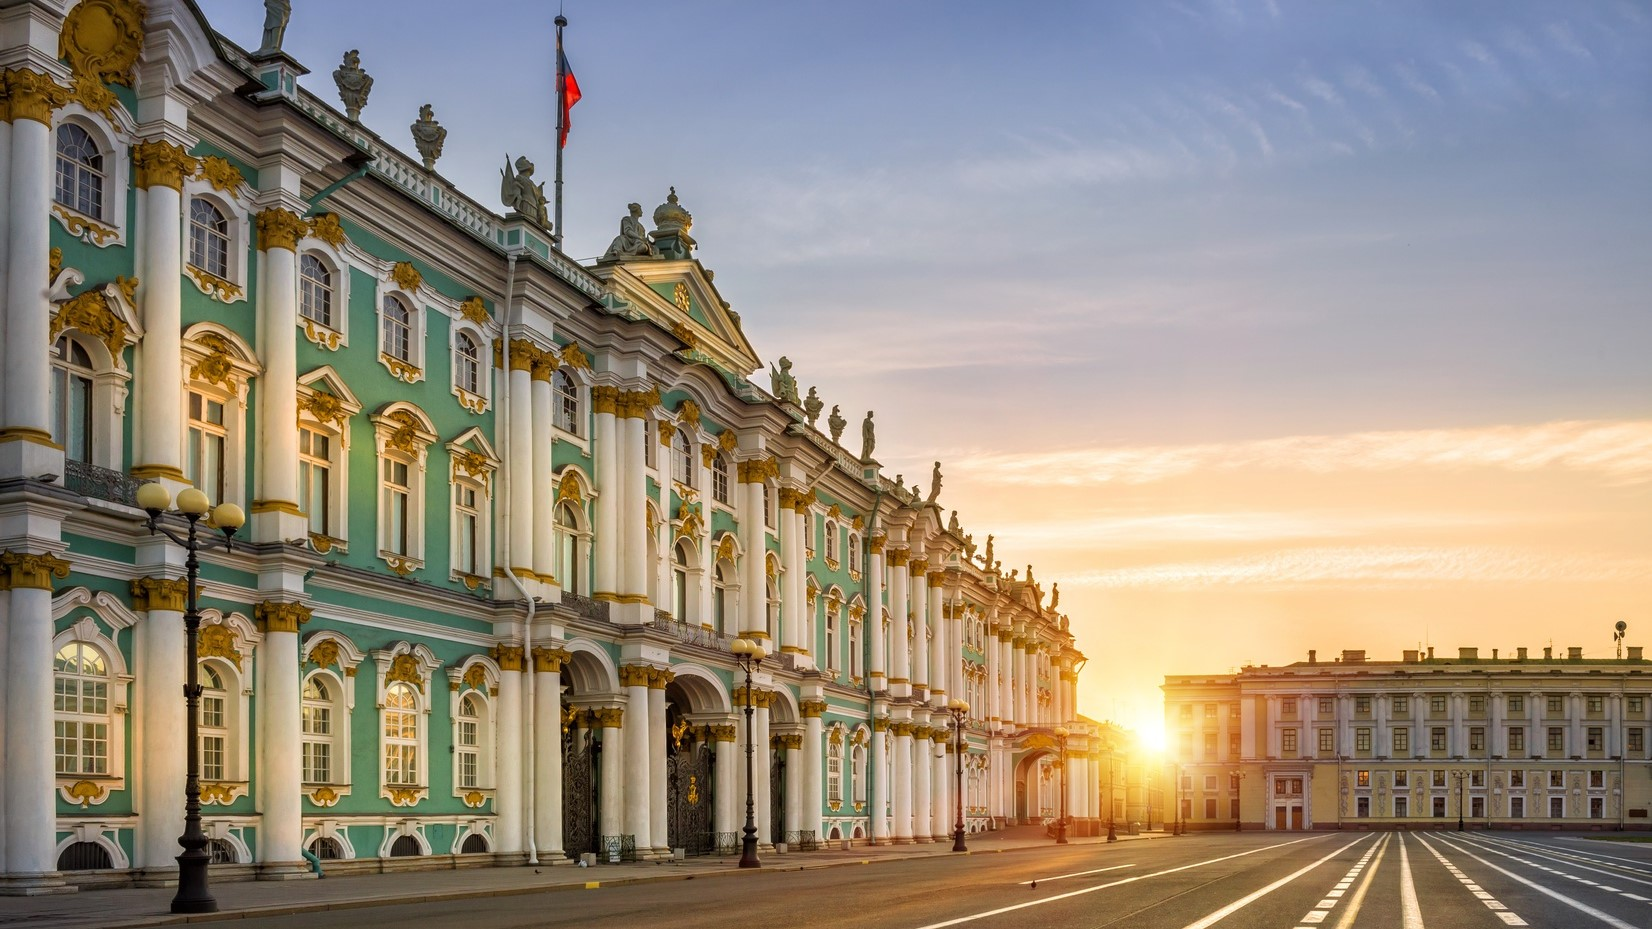 St. Petersburg, the State Hermitage Museum (the Winter Palace)